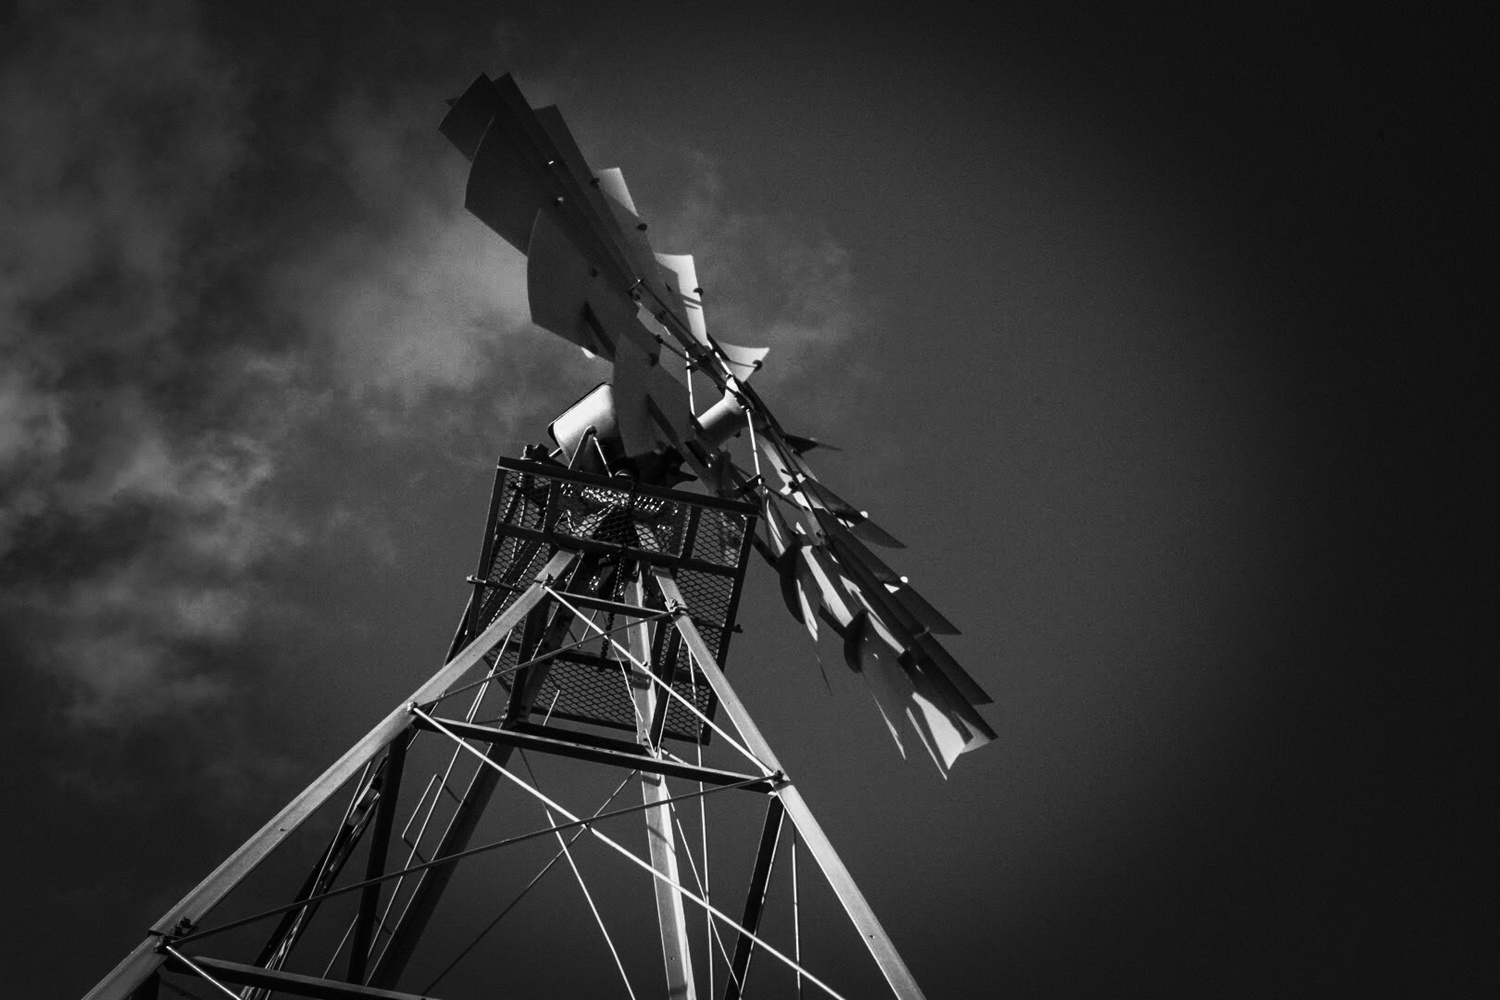 Windmill Black & White by Robert Bruton